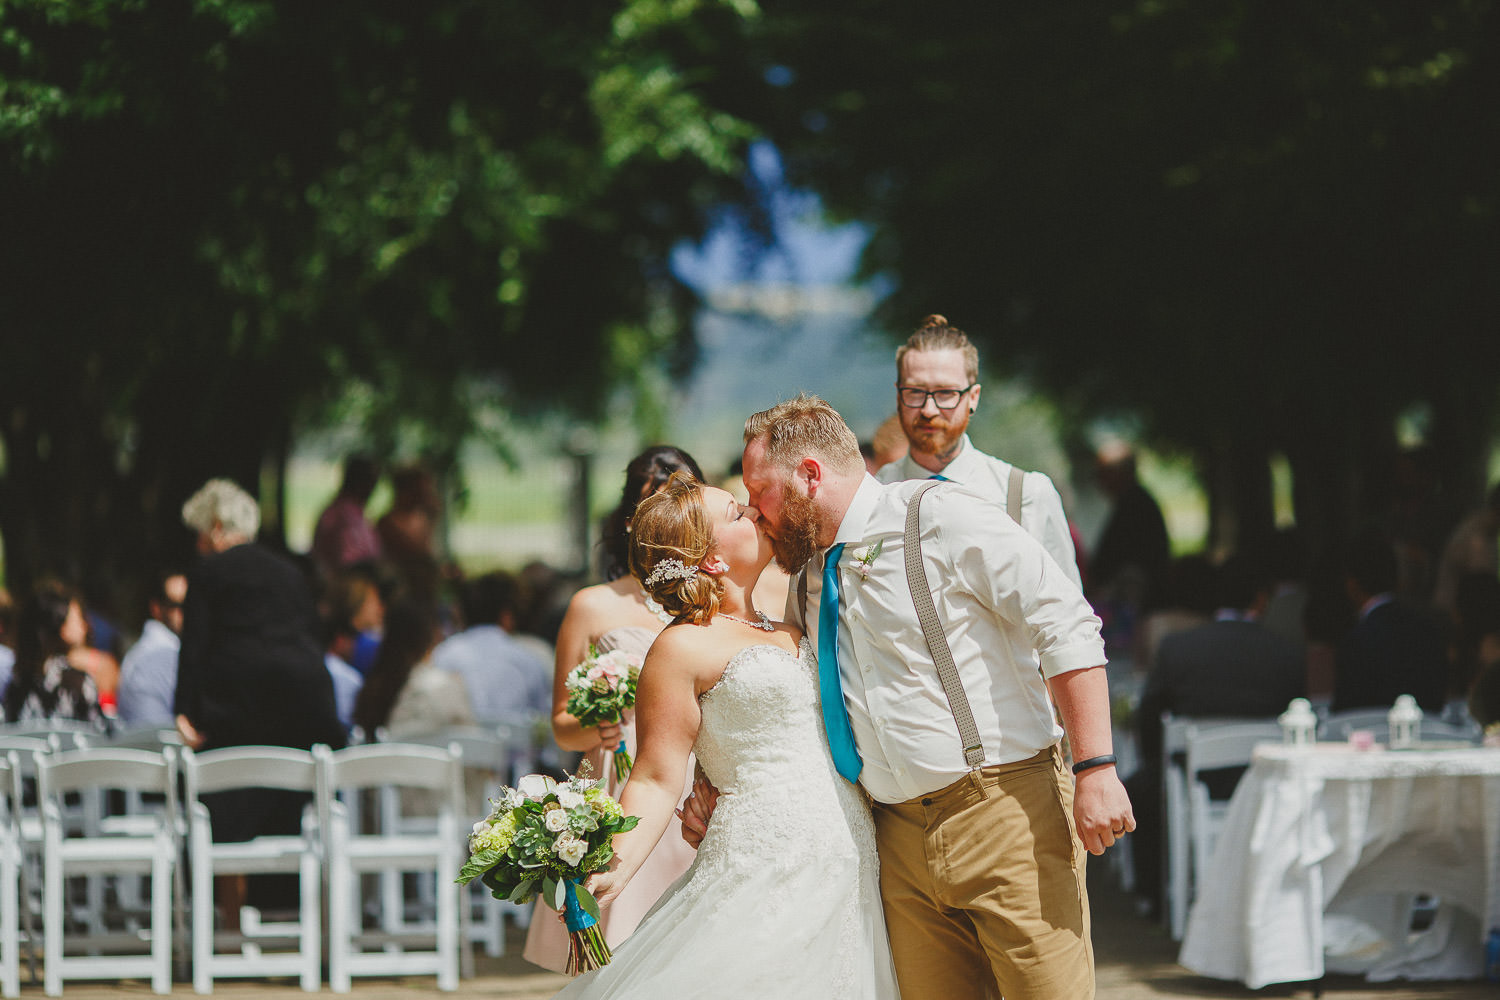 Bride and groom exchange kiss at end of aisle after ceremony